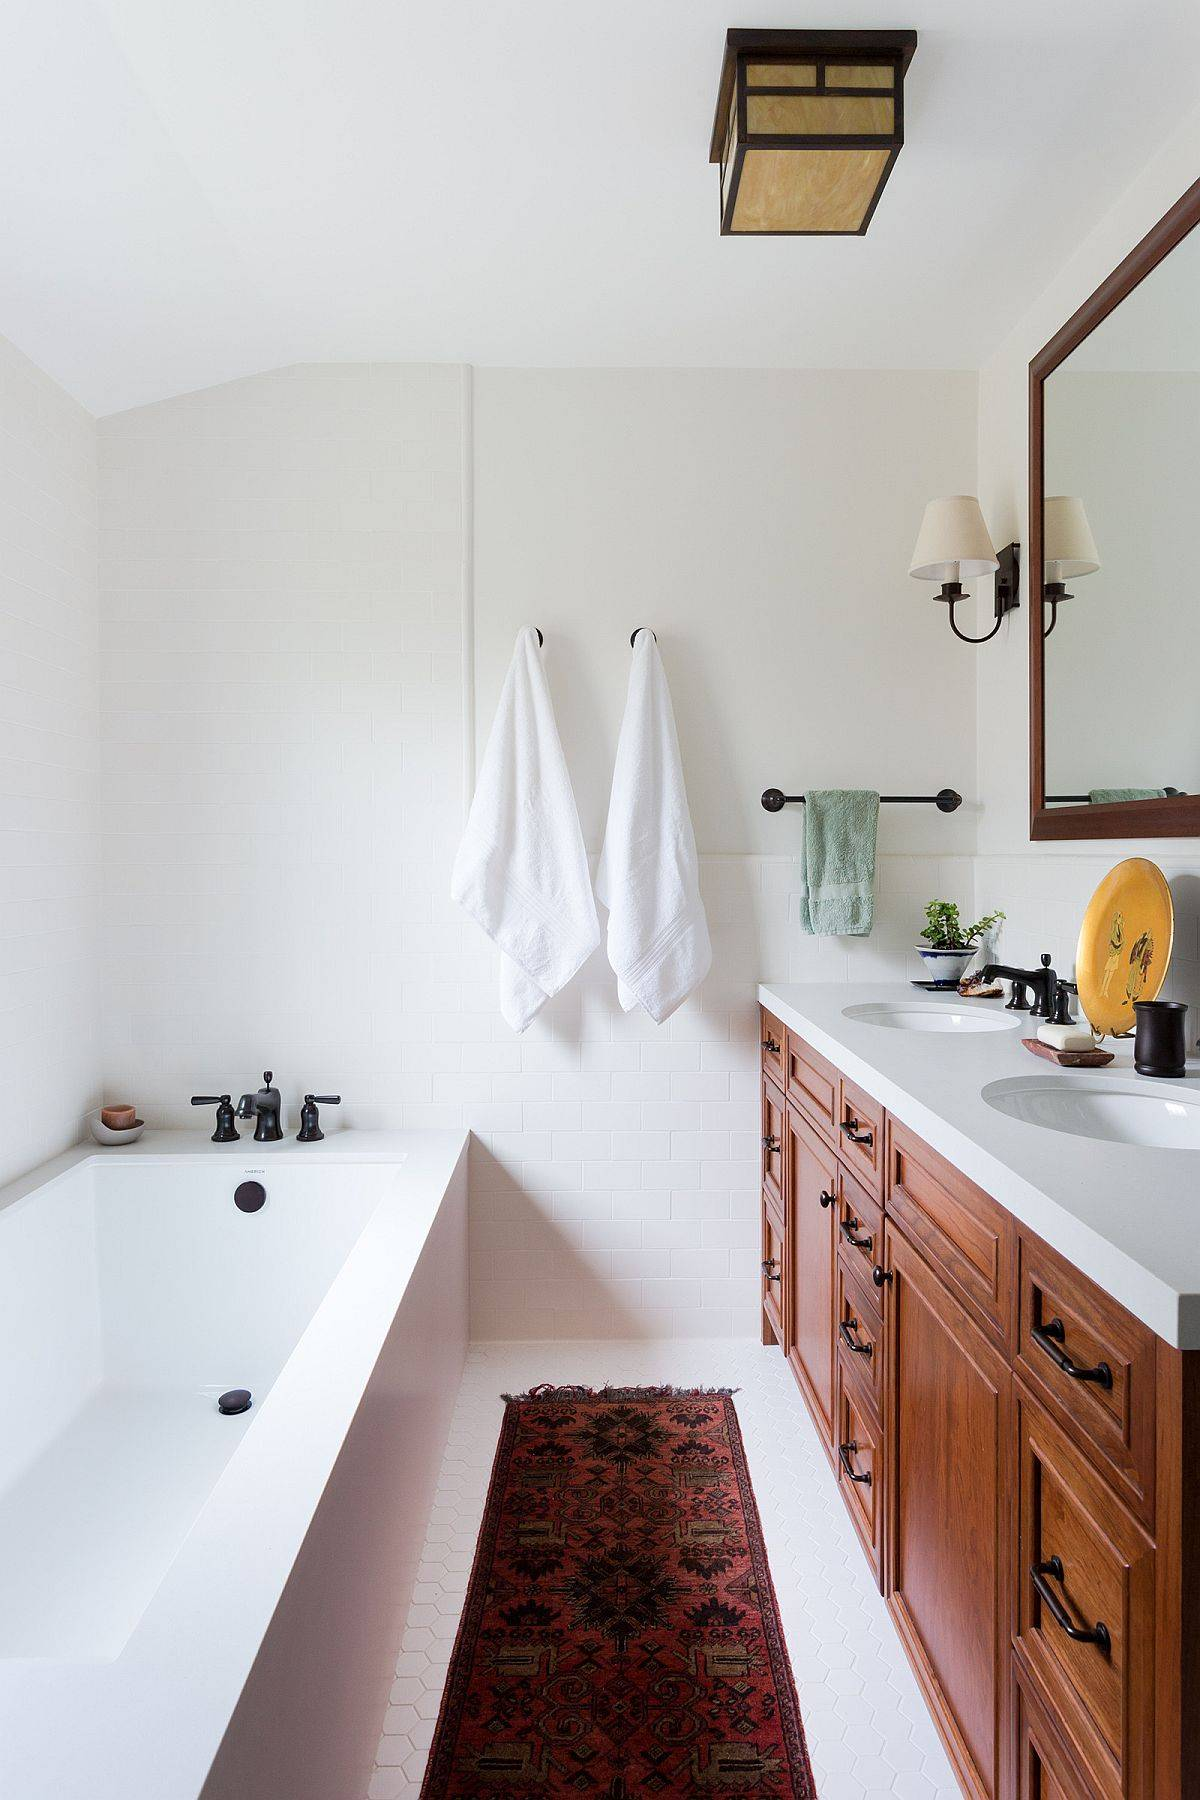 Rug-in-the-white-bathroom-complements-the-hue-of-the-wooden-vanity-in-here-95279